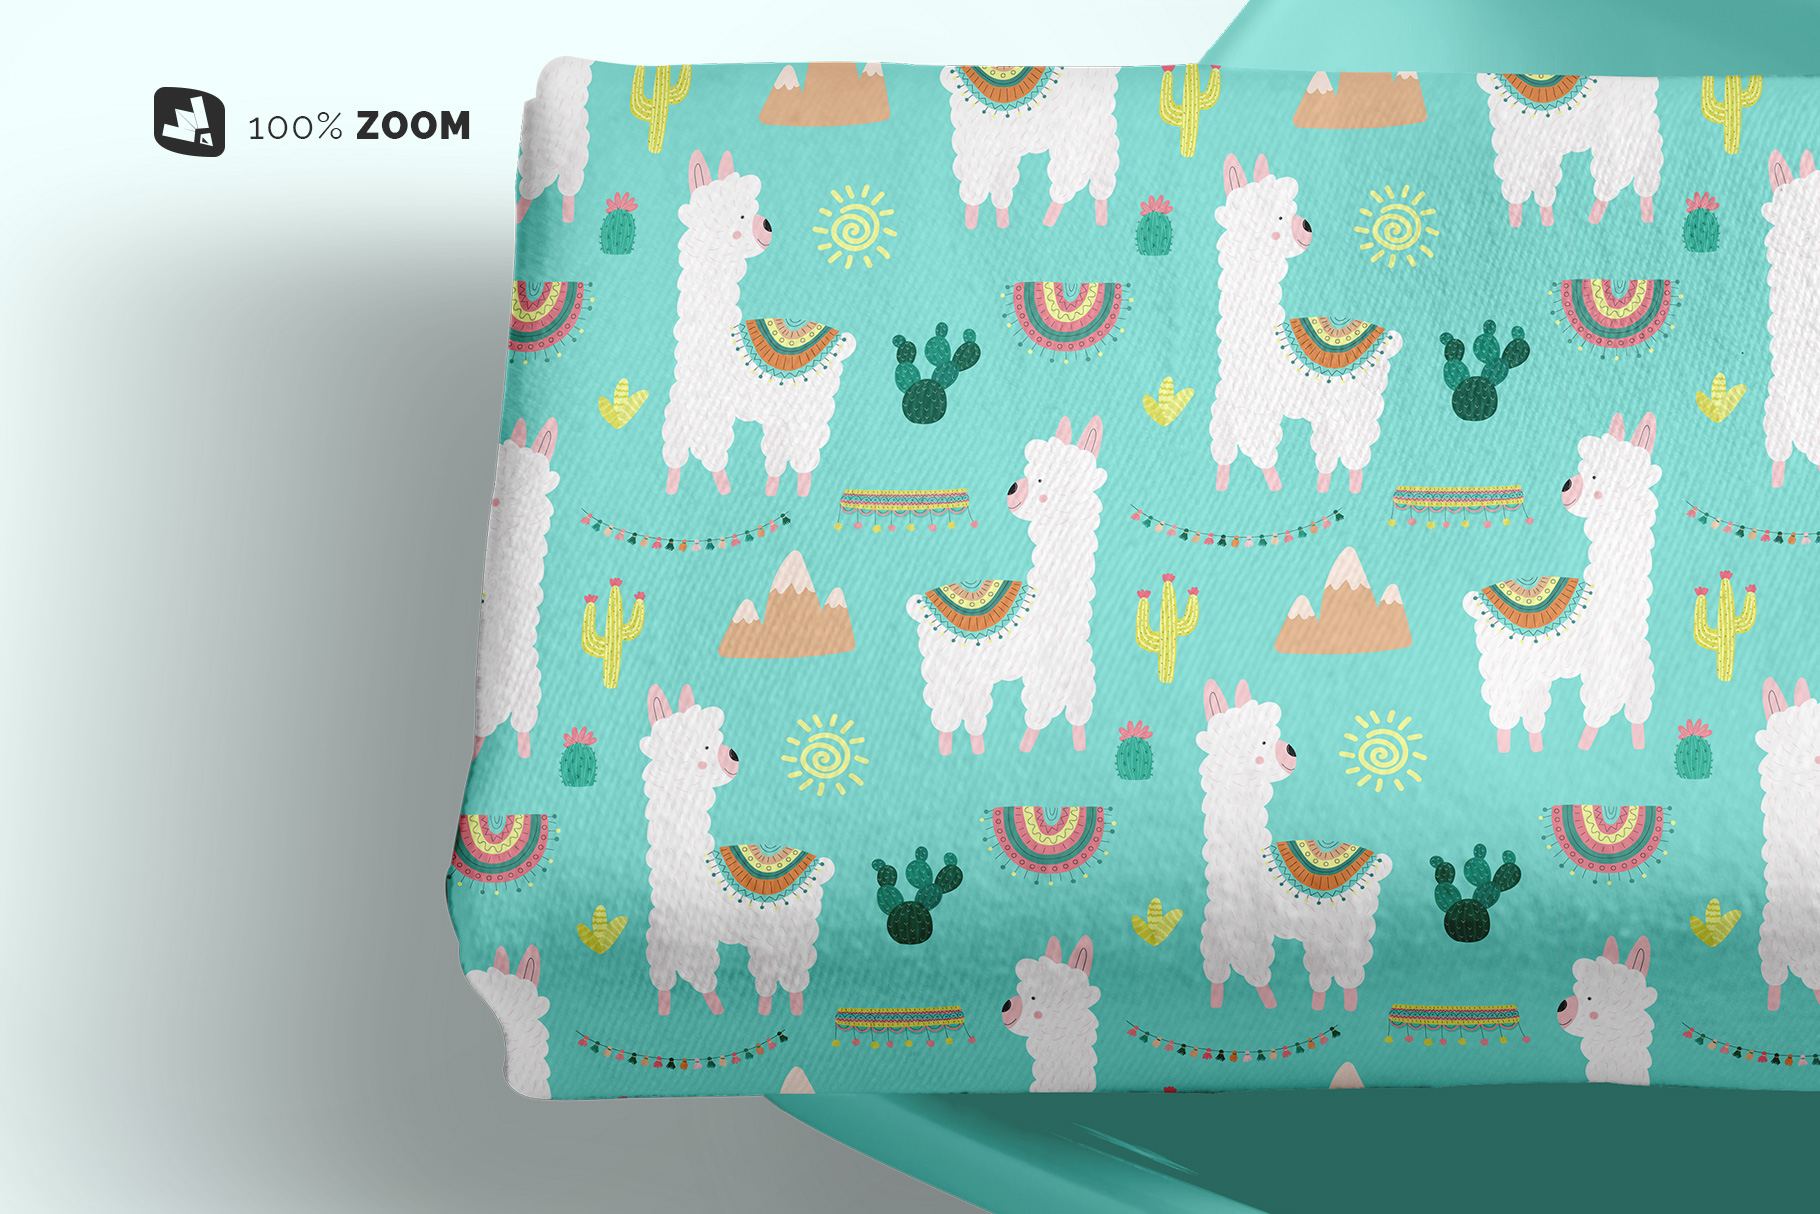 zoomed in image of the top view dinner cloth with dish mockup